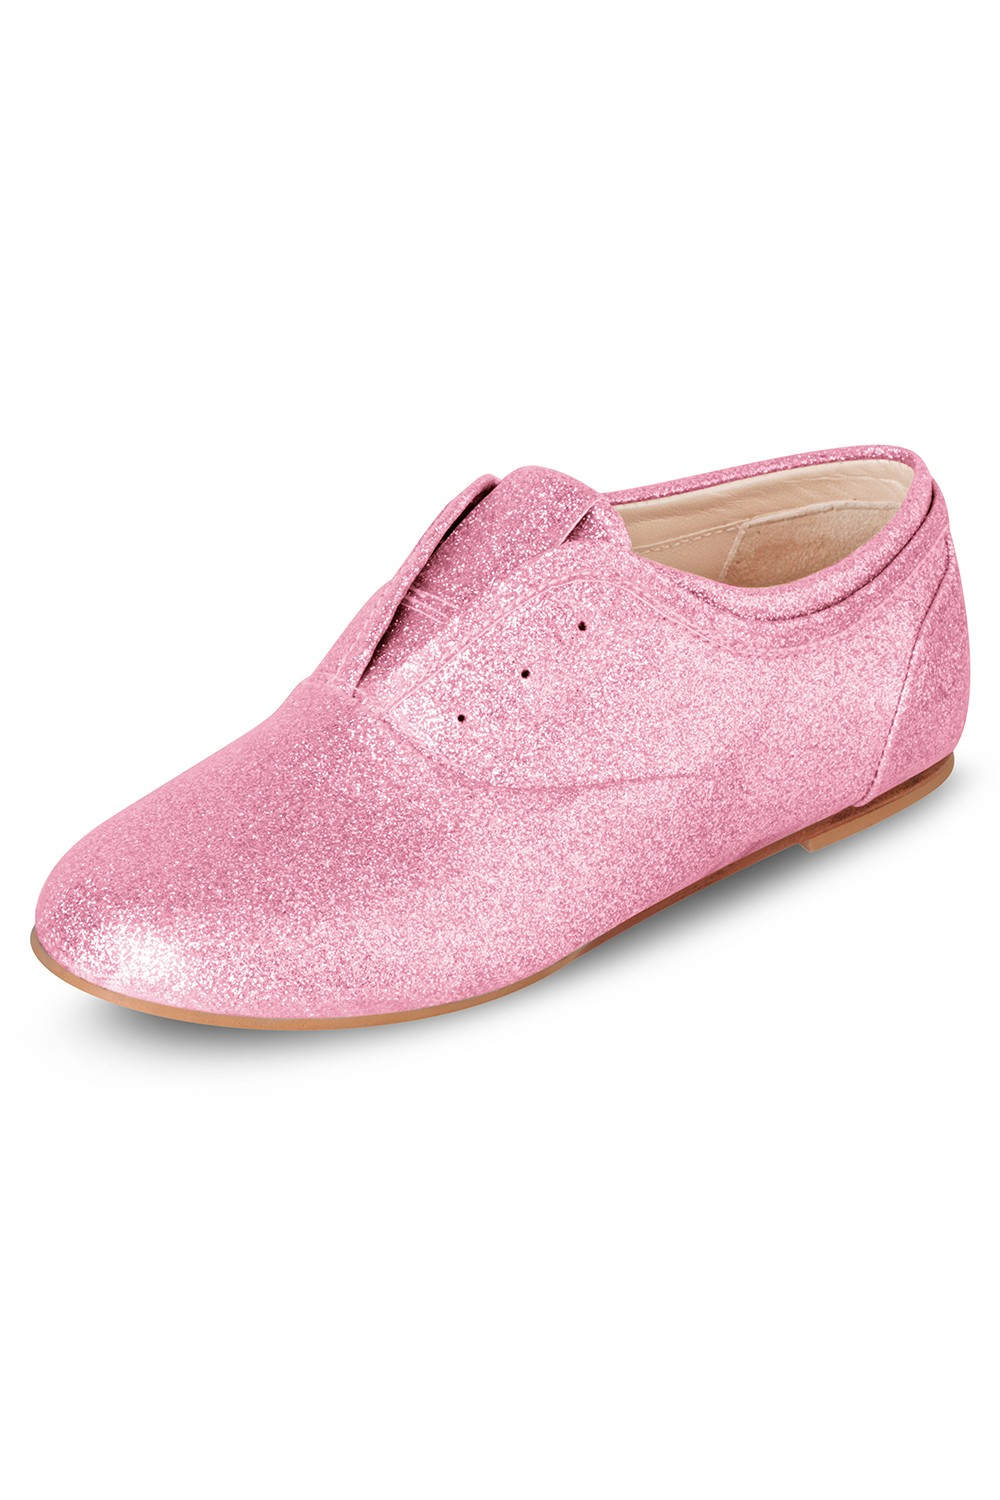 Charline - Girls Girls Fashion Shoes